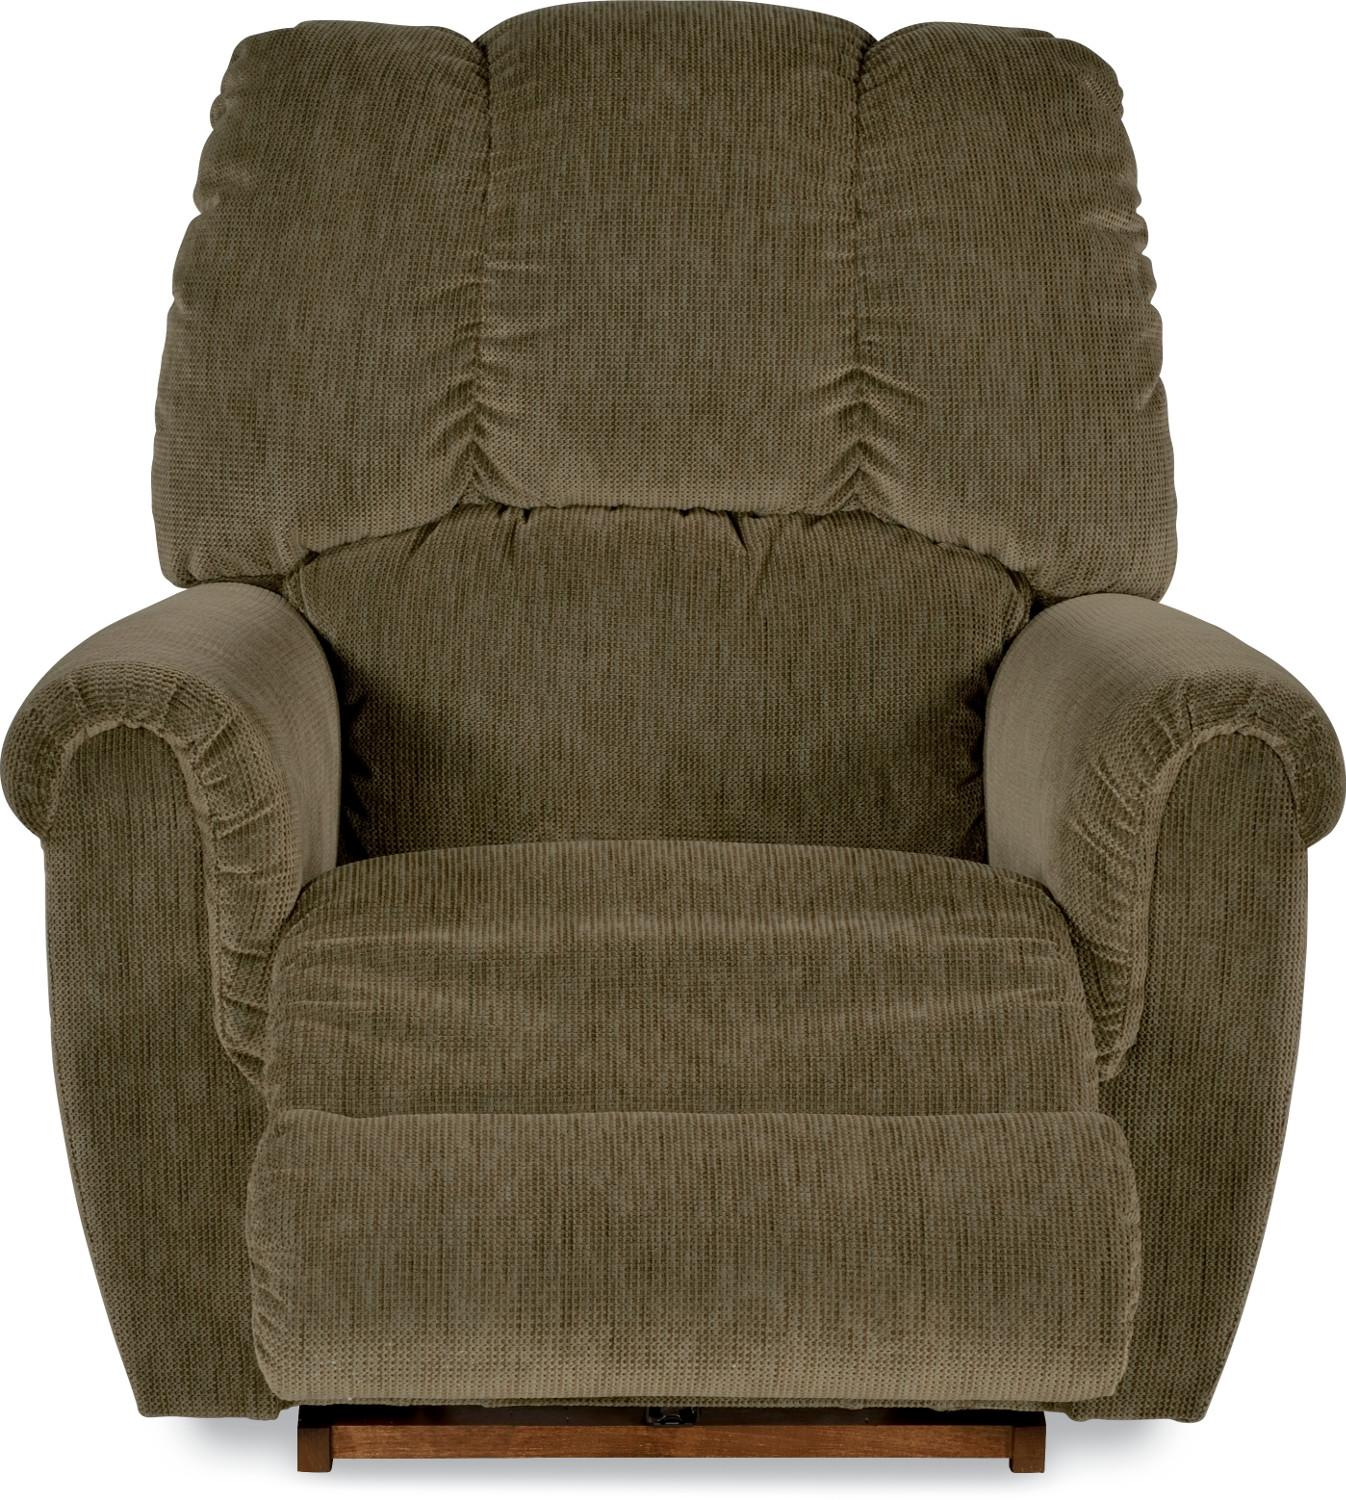 lazy furniture recliner z la dorado el recliners boy